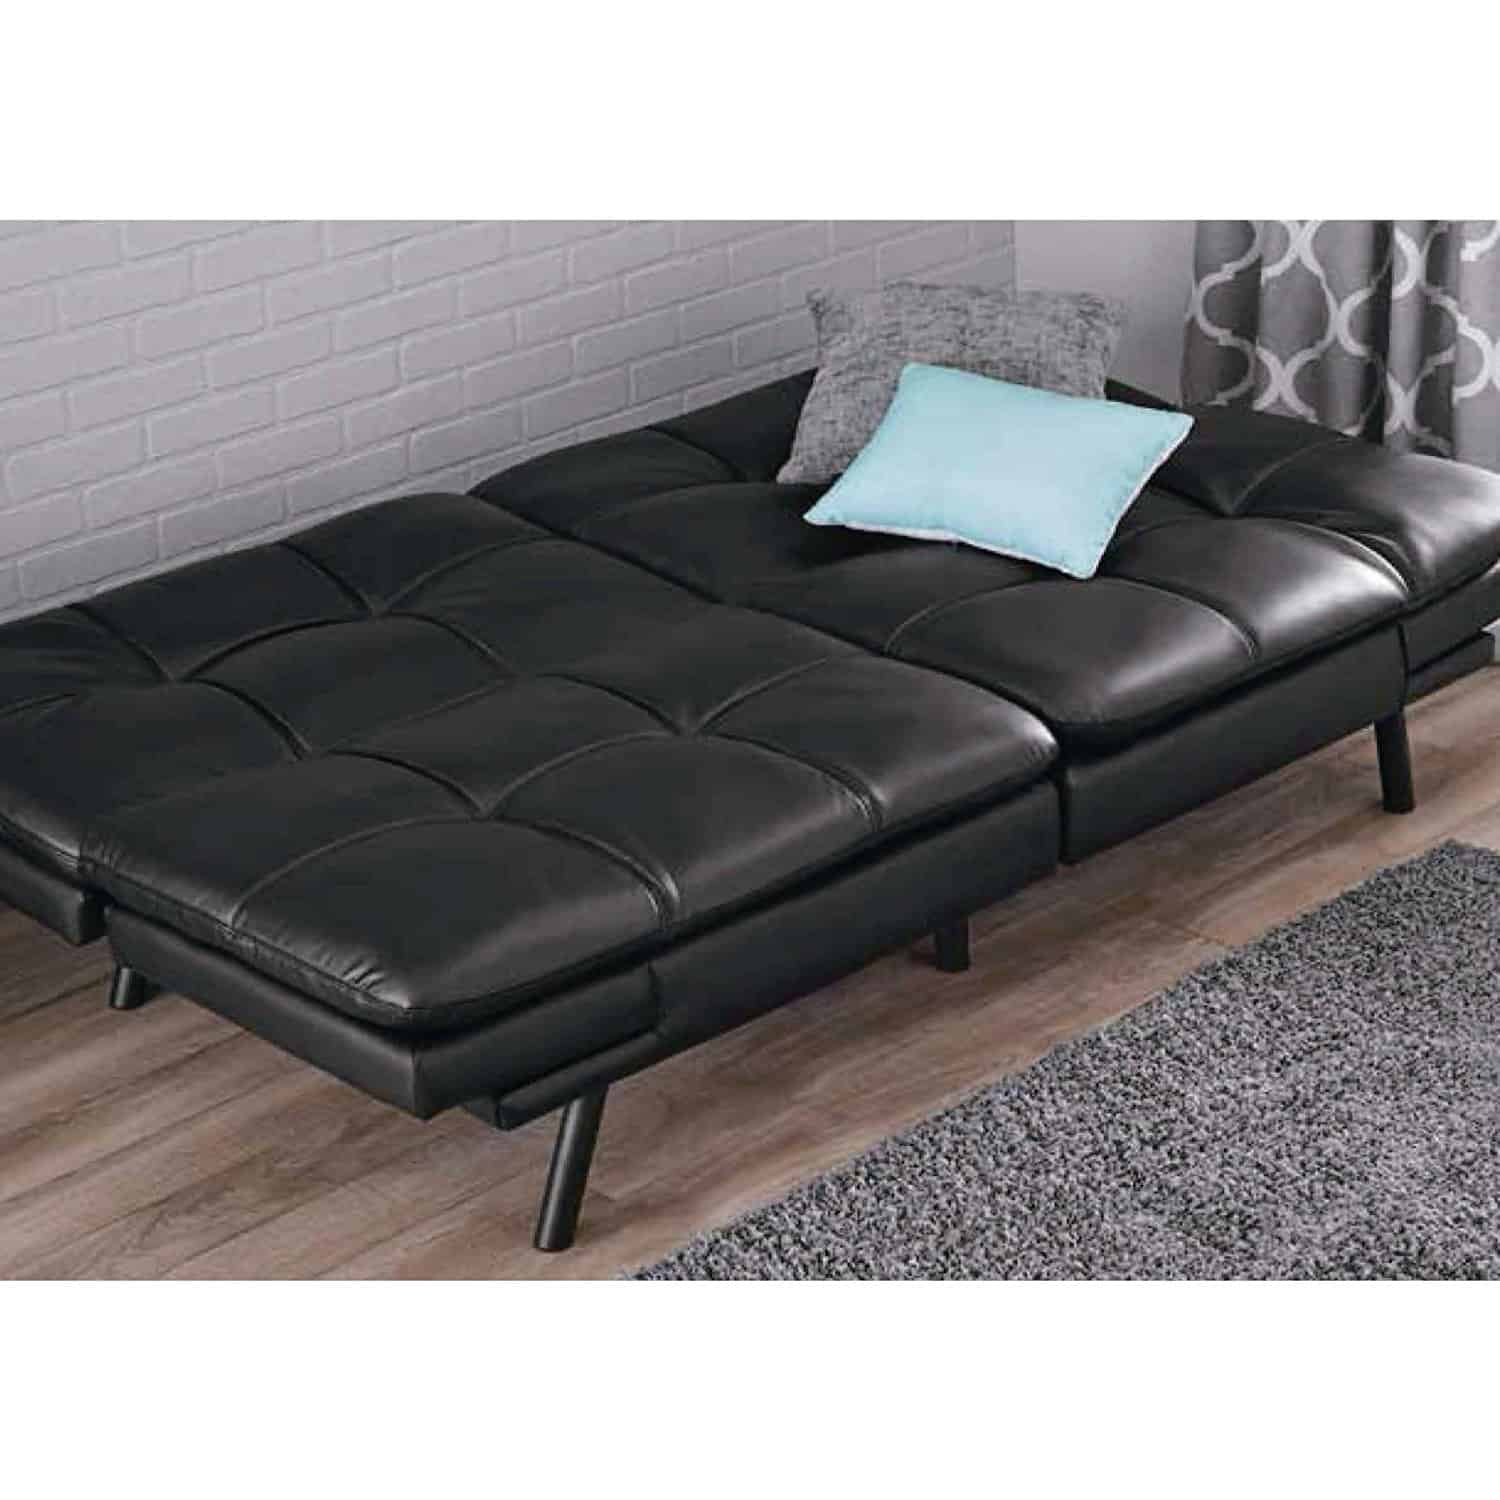 Best Sleeper Sofa Amp Sofa Beds For 2019 Reviews And Buyer